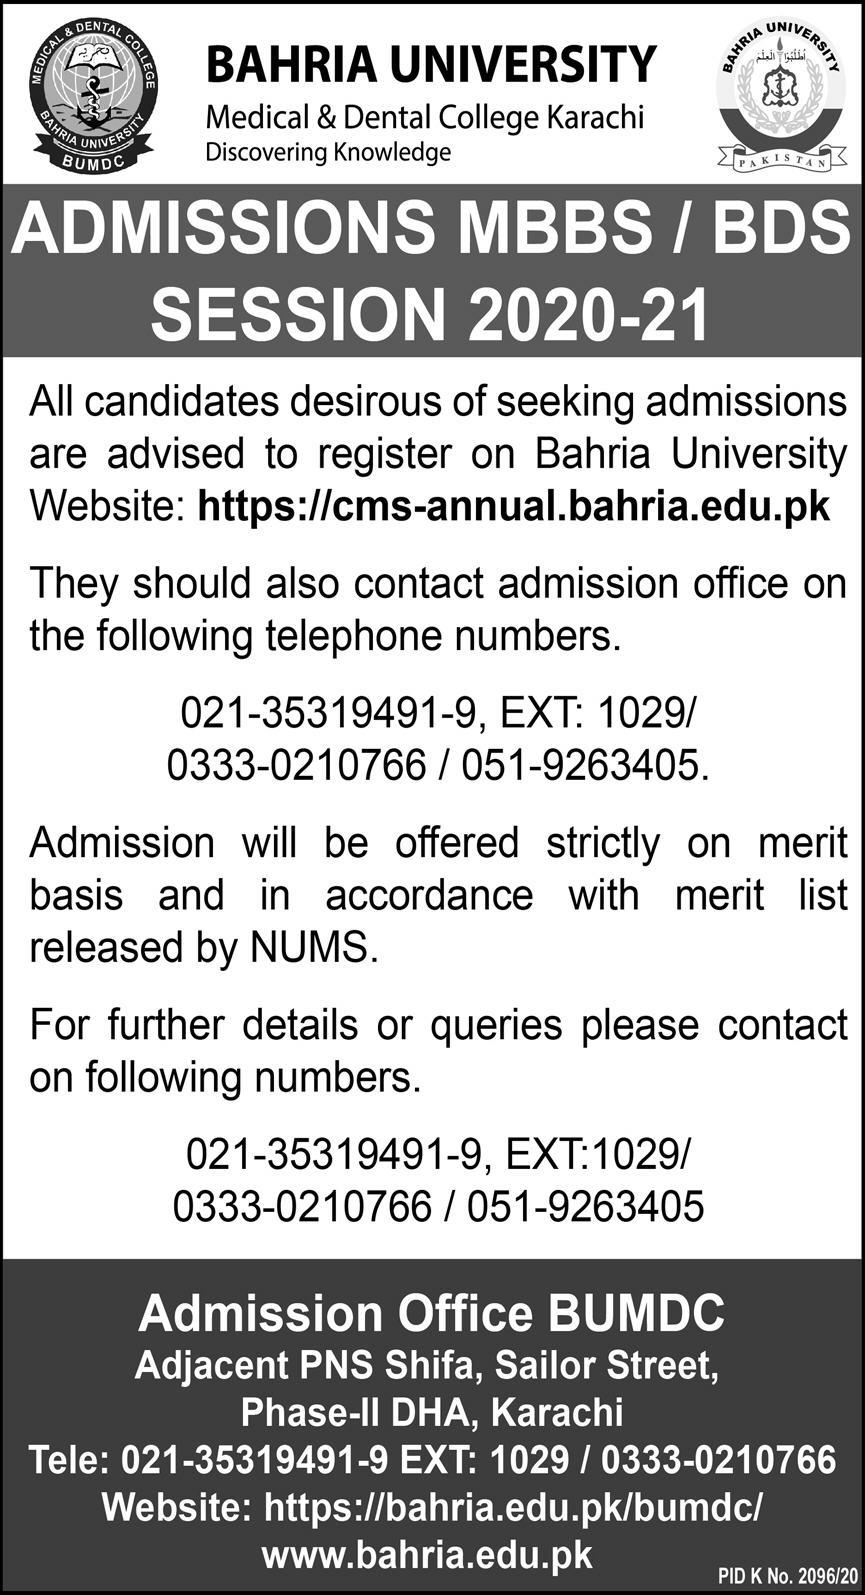 Bahria University Medical & Dental College Karachi MBBS & BDS Admission 2020